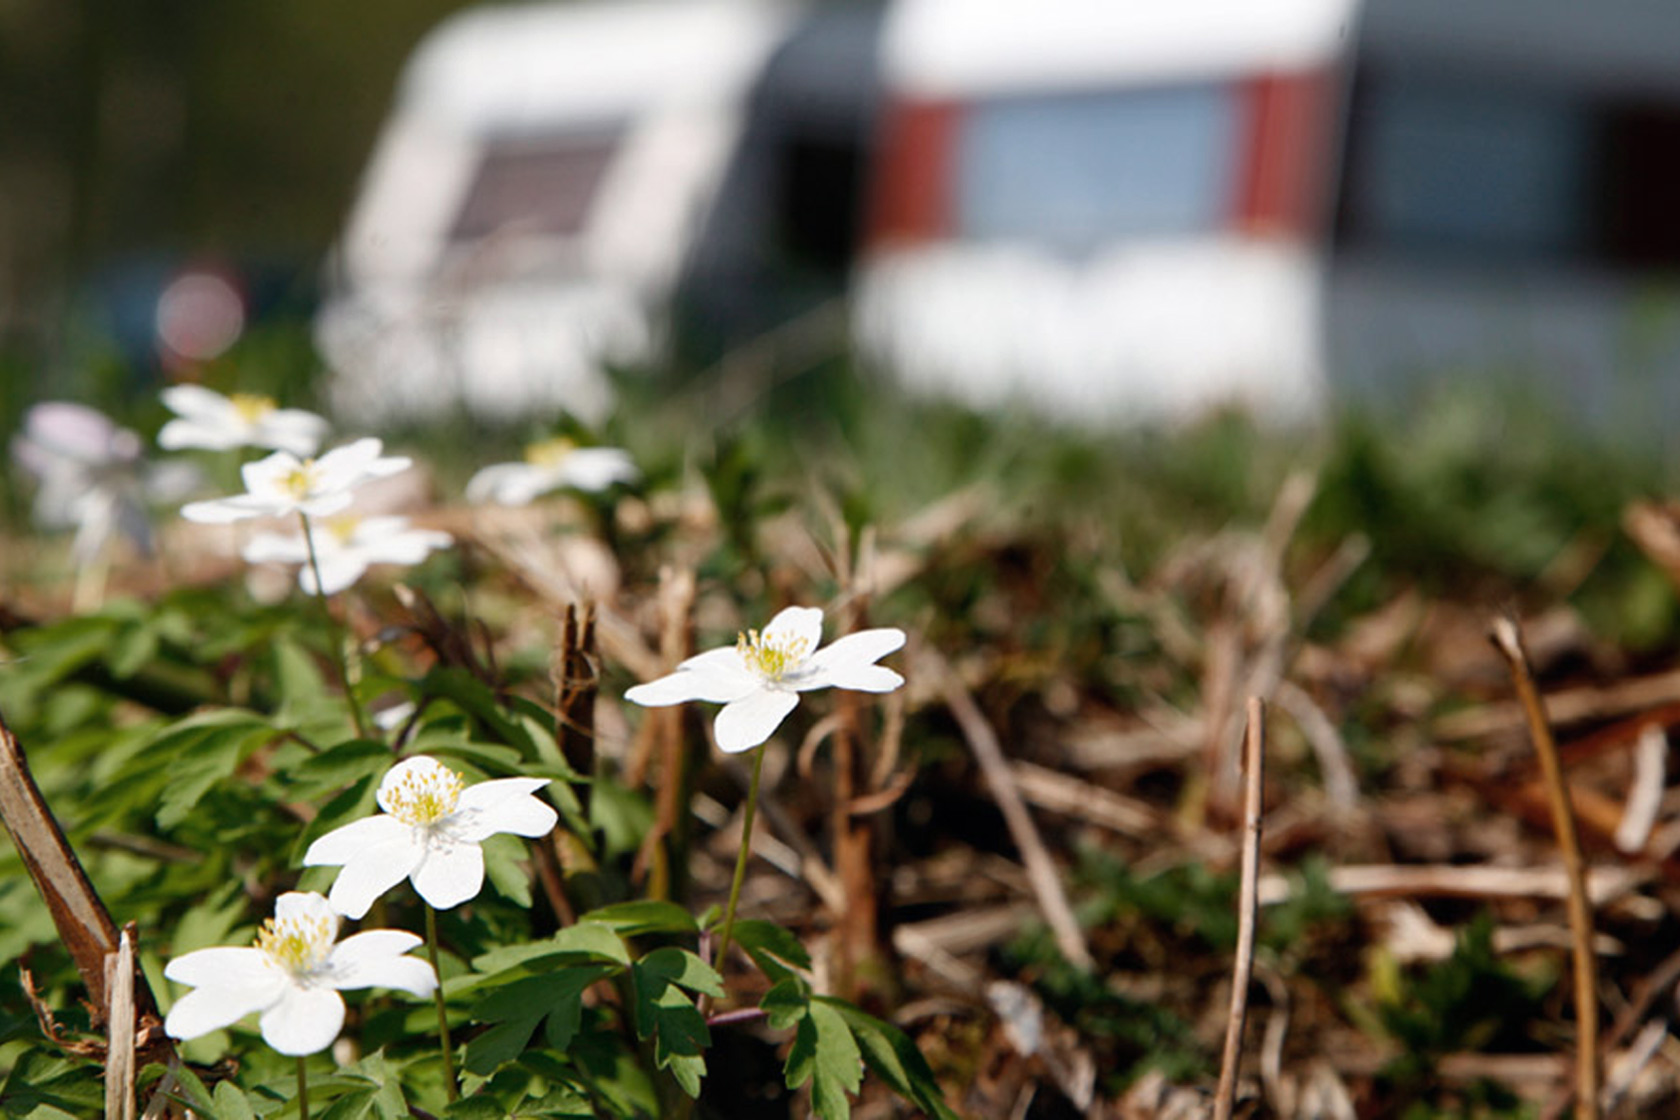 Spring flowers with two caravans in the background